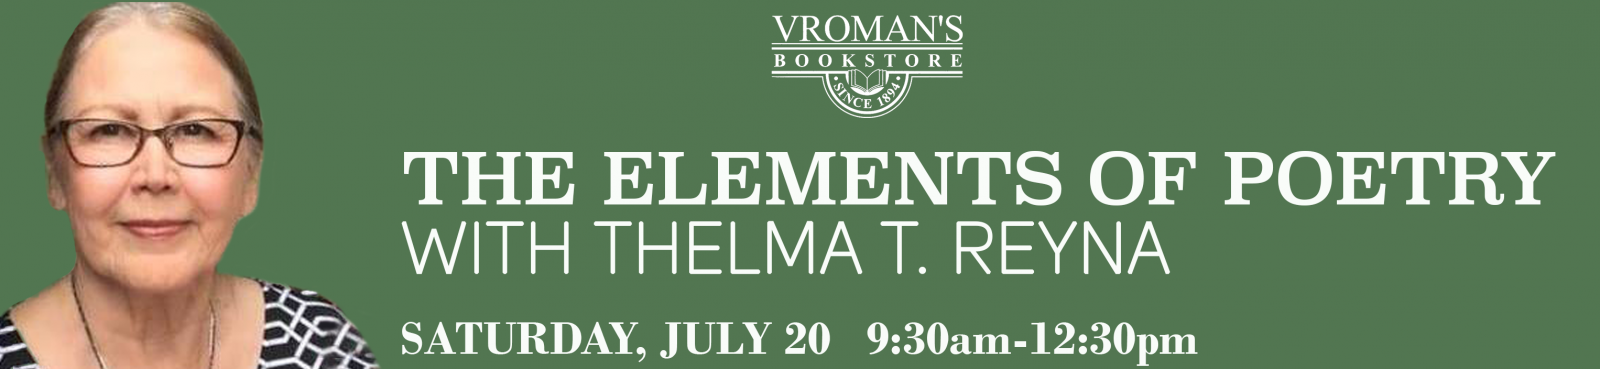 Elements of Poetry Workshop with Thelma Reyna, Saturday July 20th from 9:30am-12:30pm